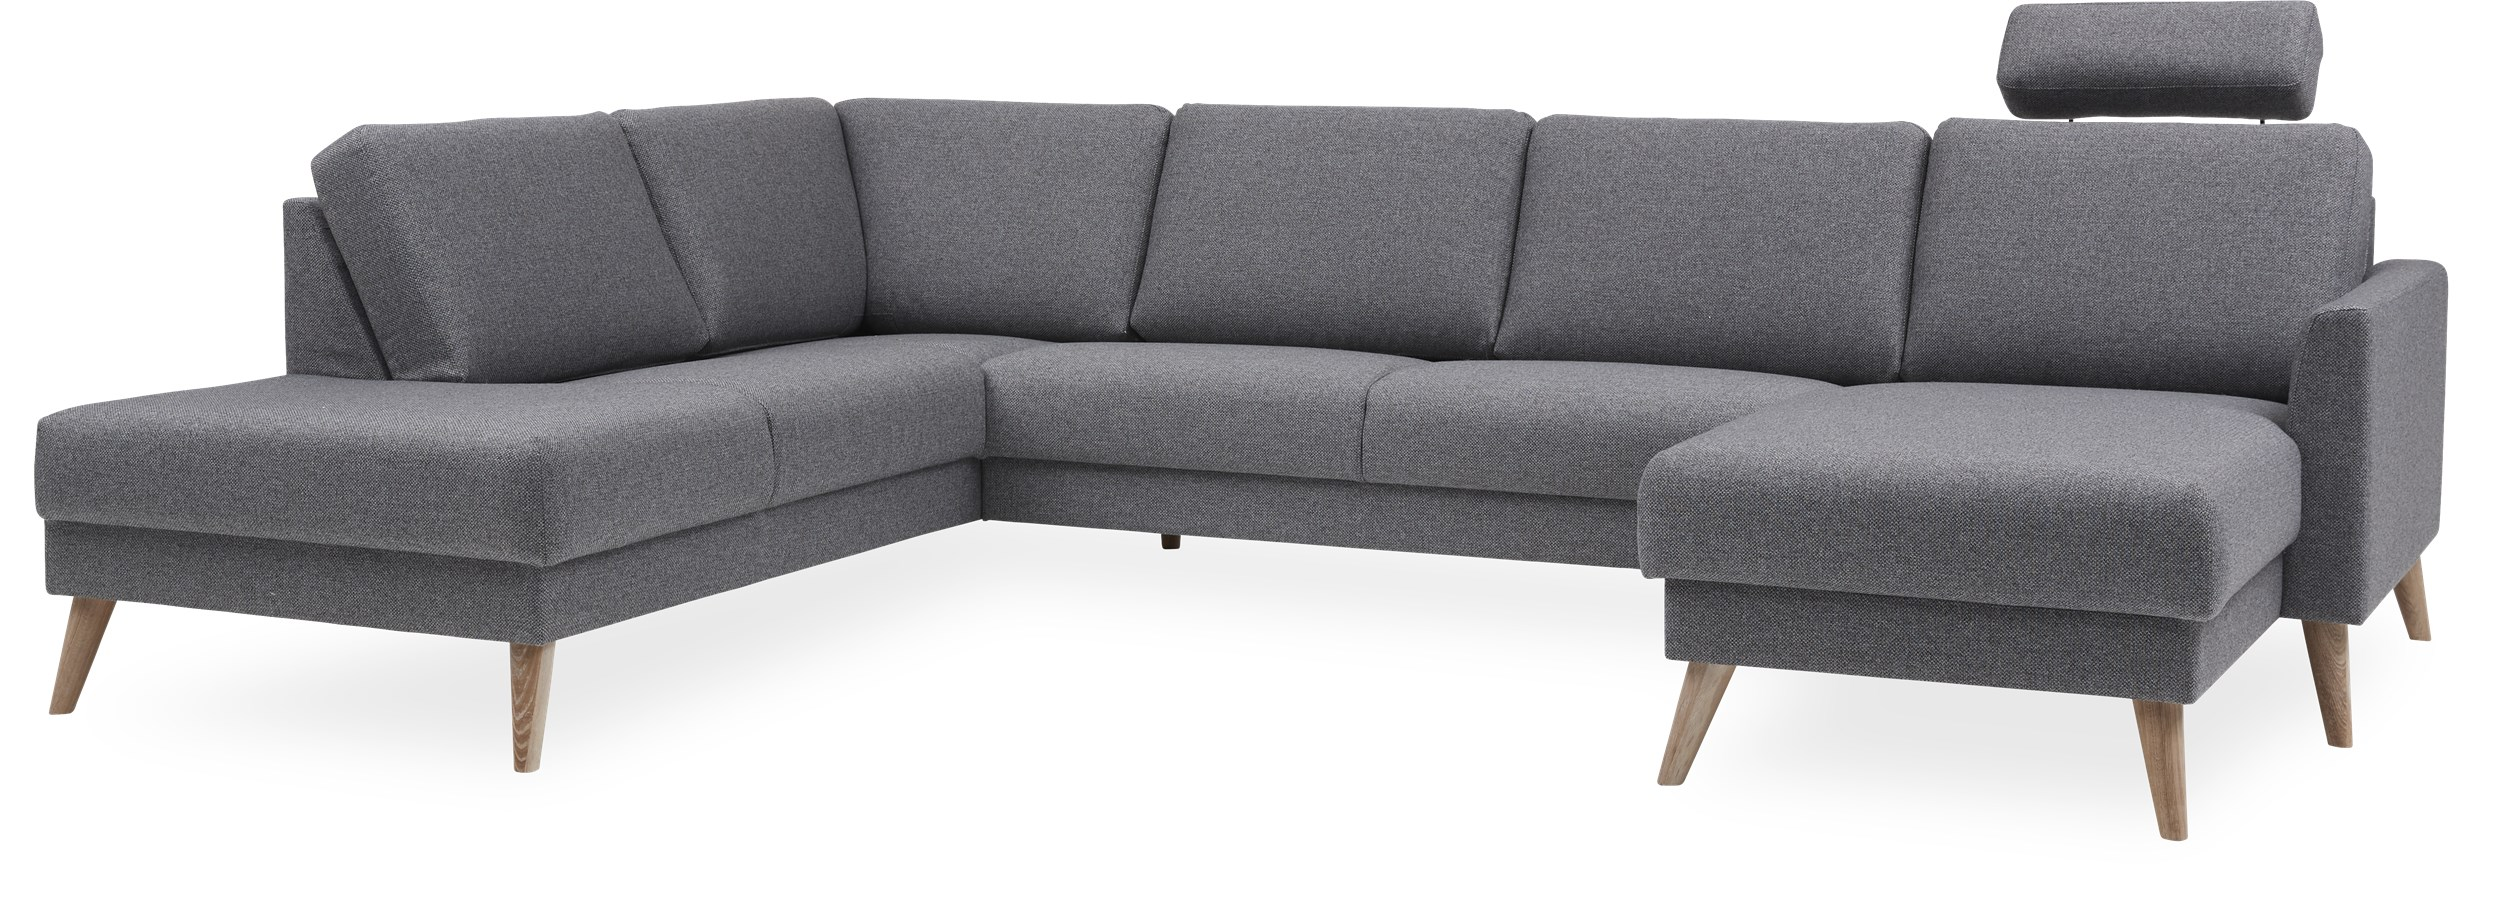 Lotus Hjørnesofa med chaiselong